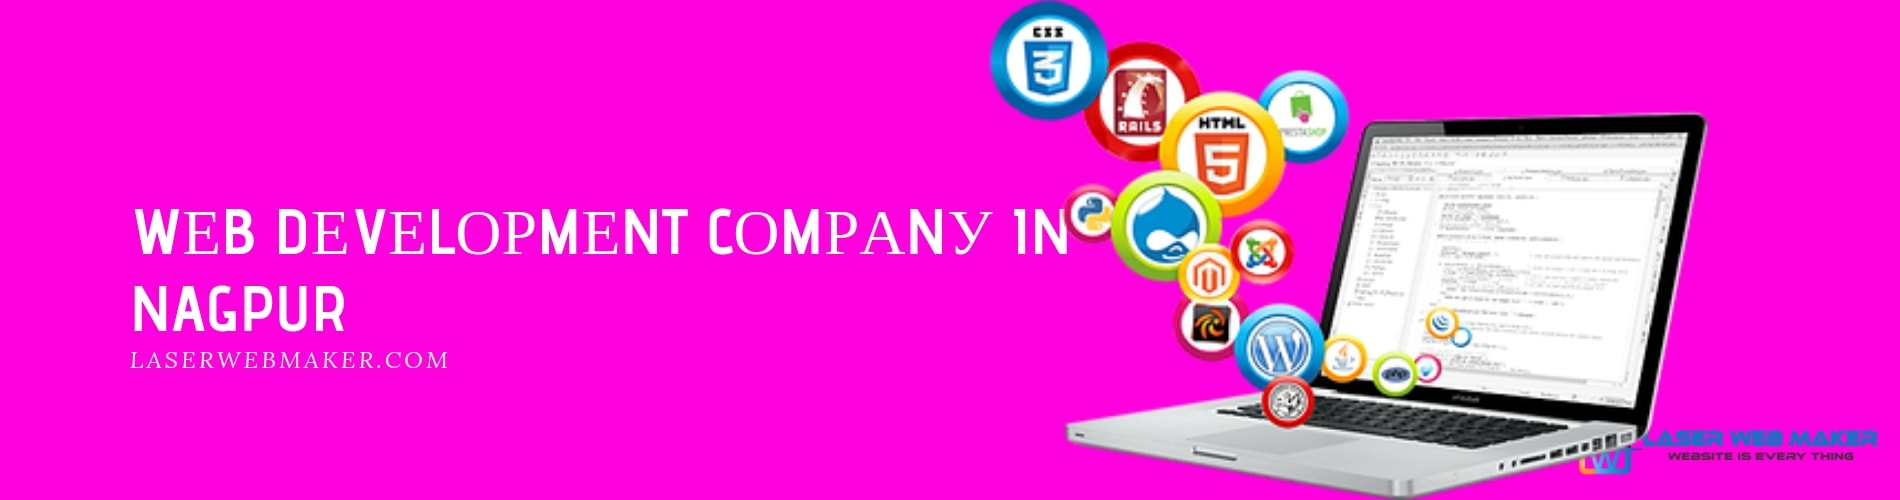 web development company in nagpur